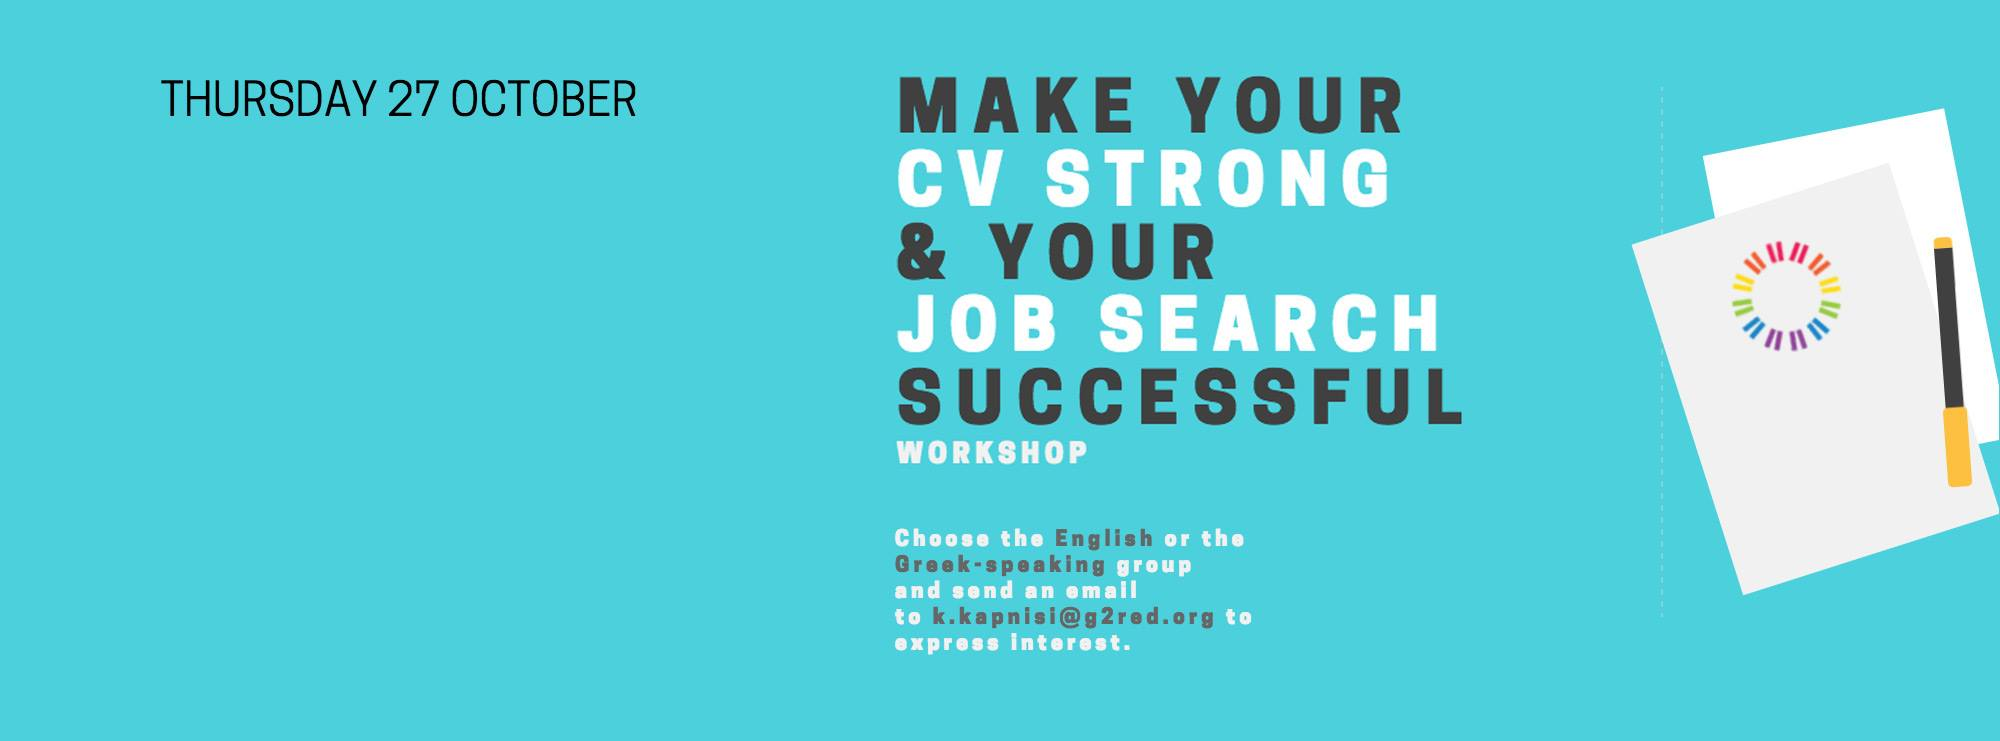 Make Your Cv Strong Your Job Search Successful Workshop October